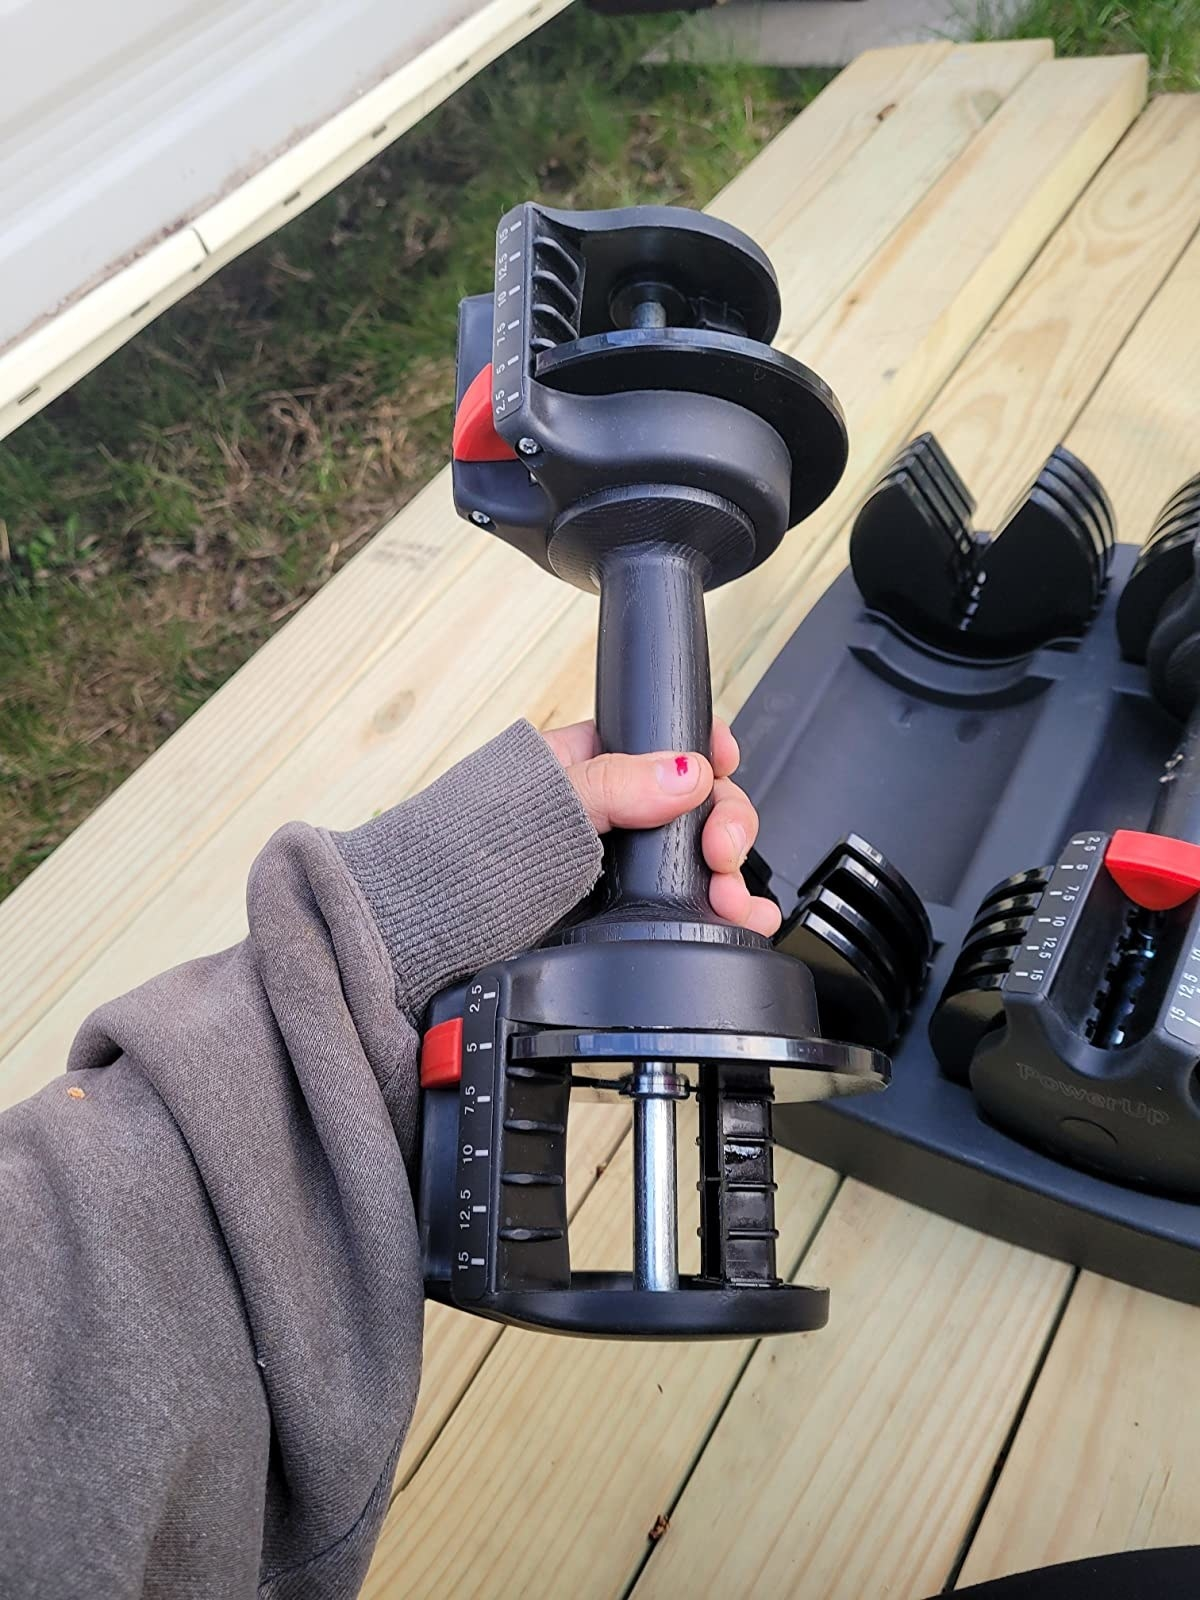 reviewer holds a black adjustable dumbbell in their hand